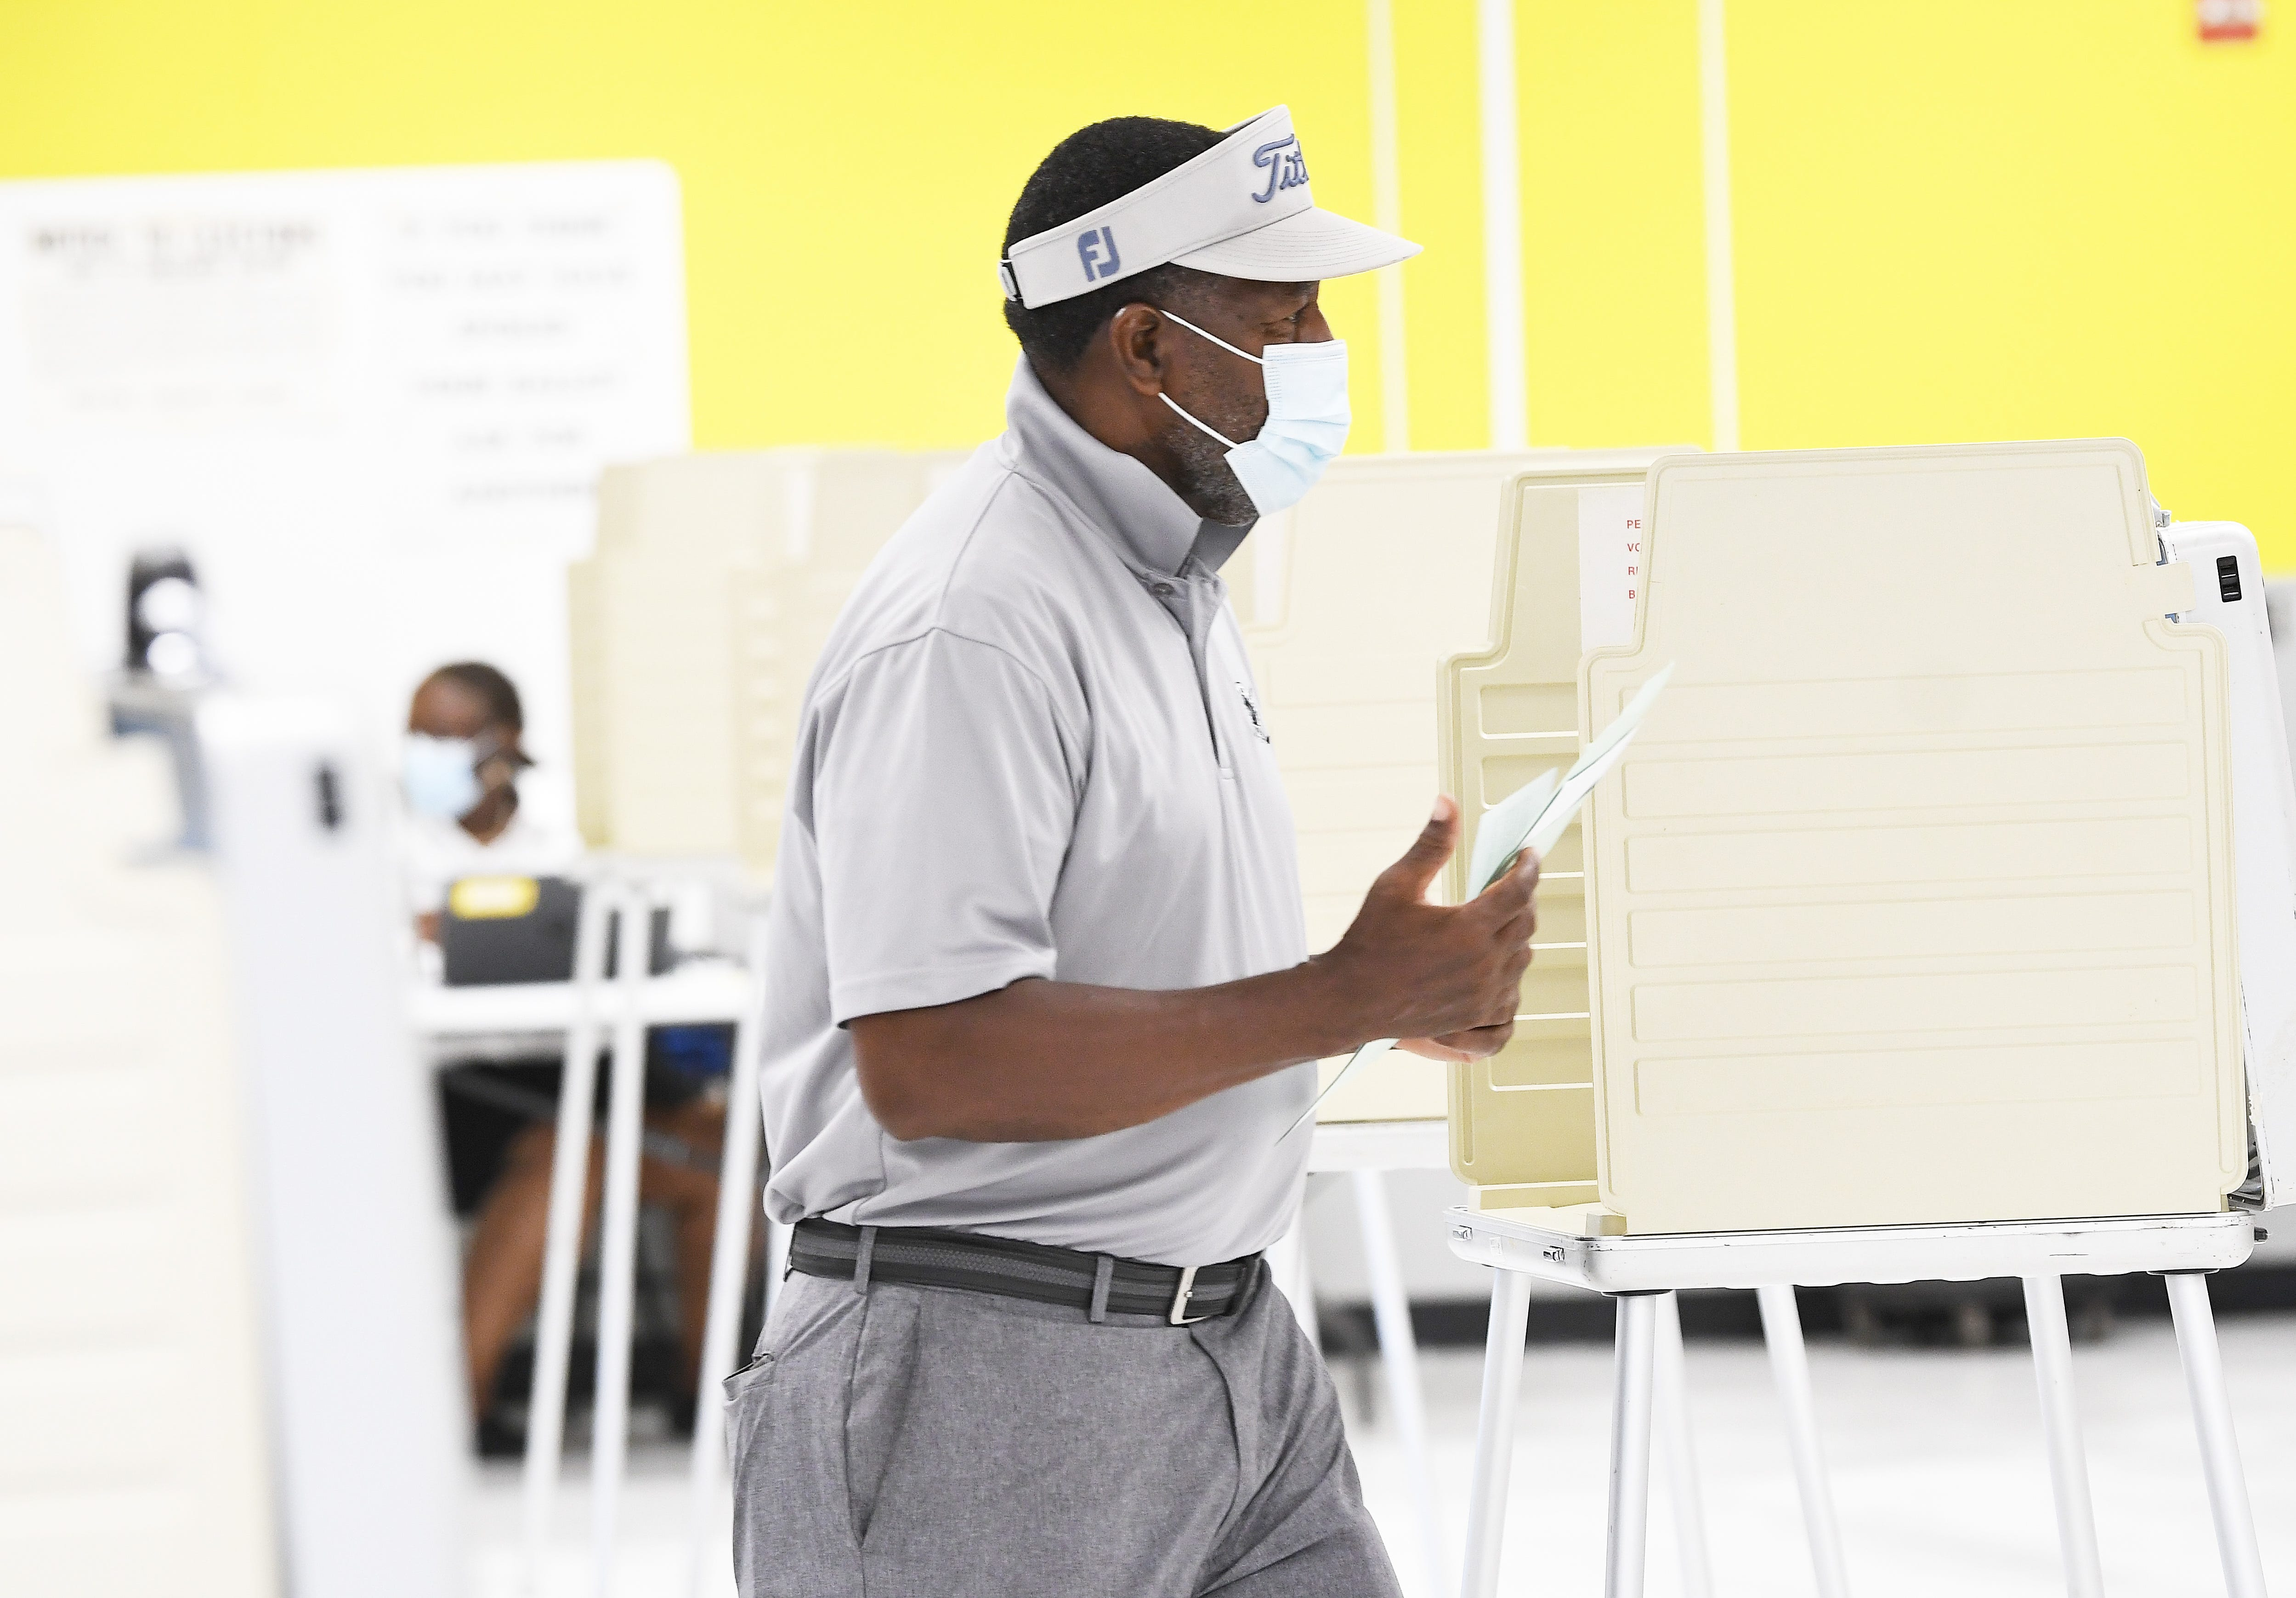 Polls closed in Metro Detroit after voters hit polls in modest numbers